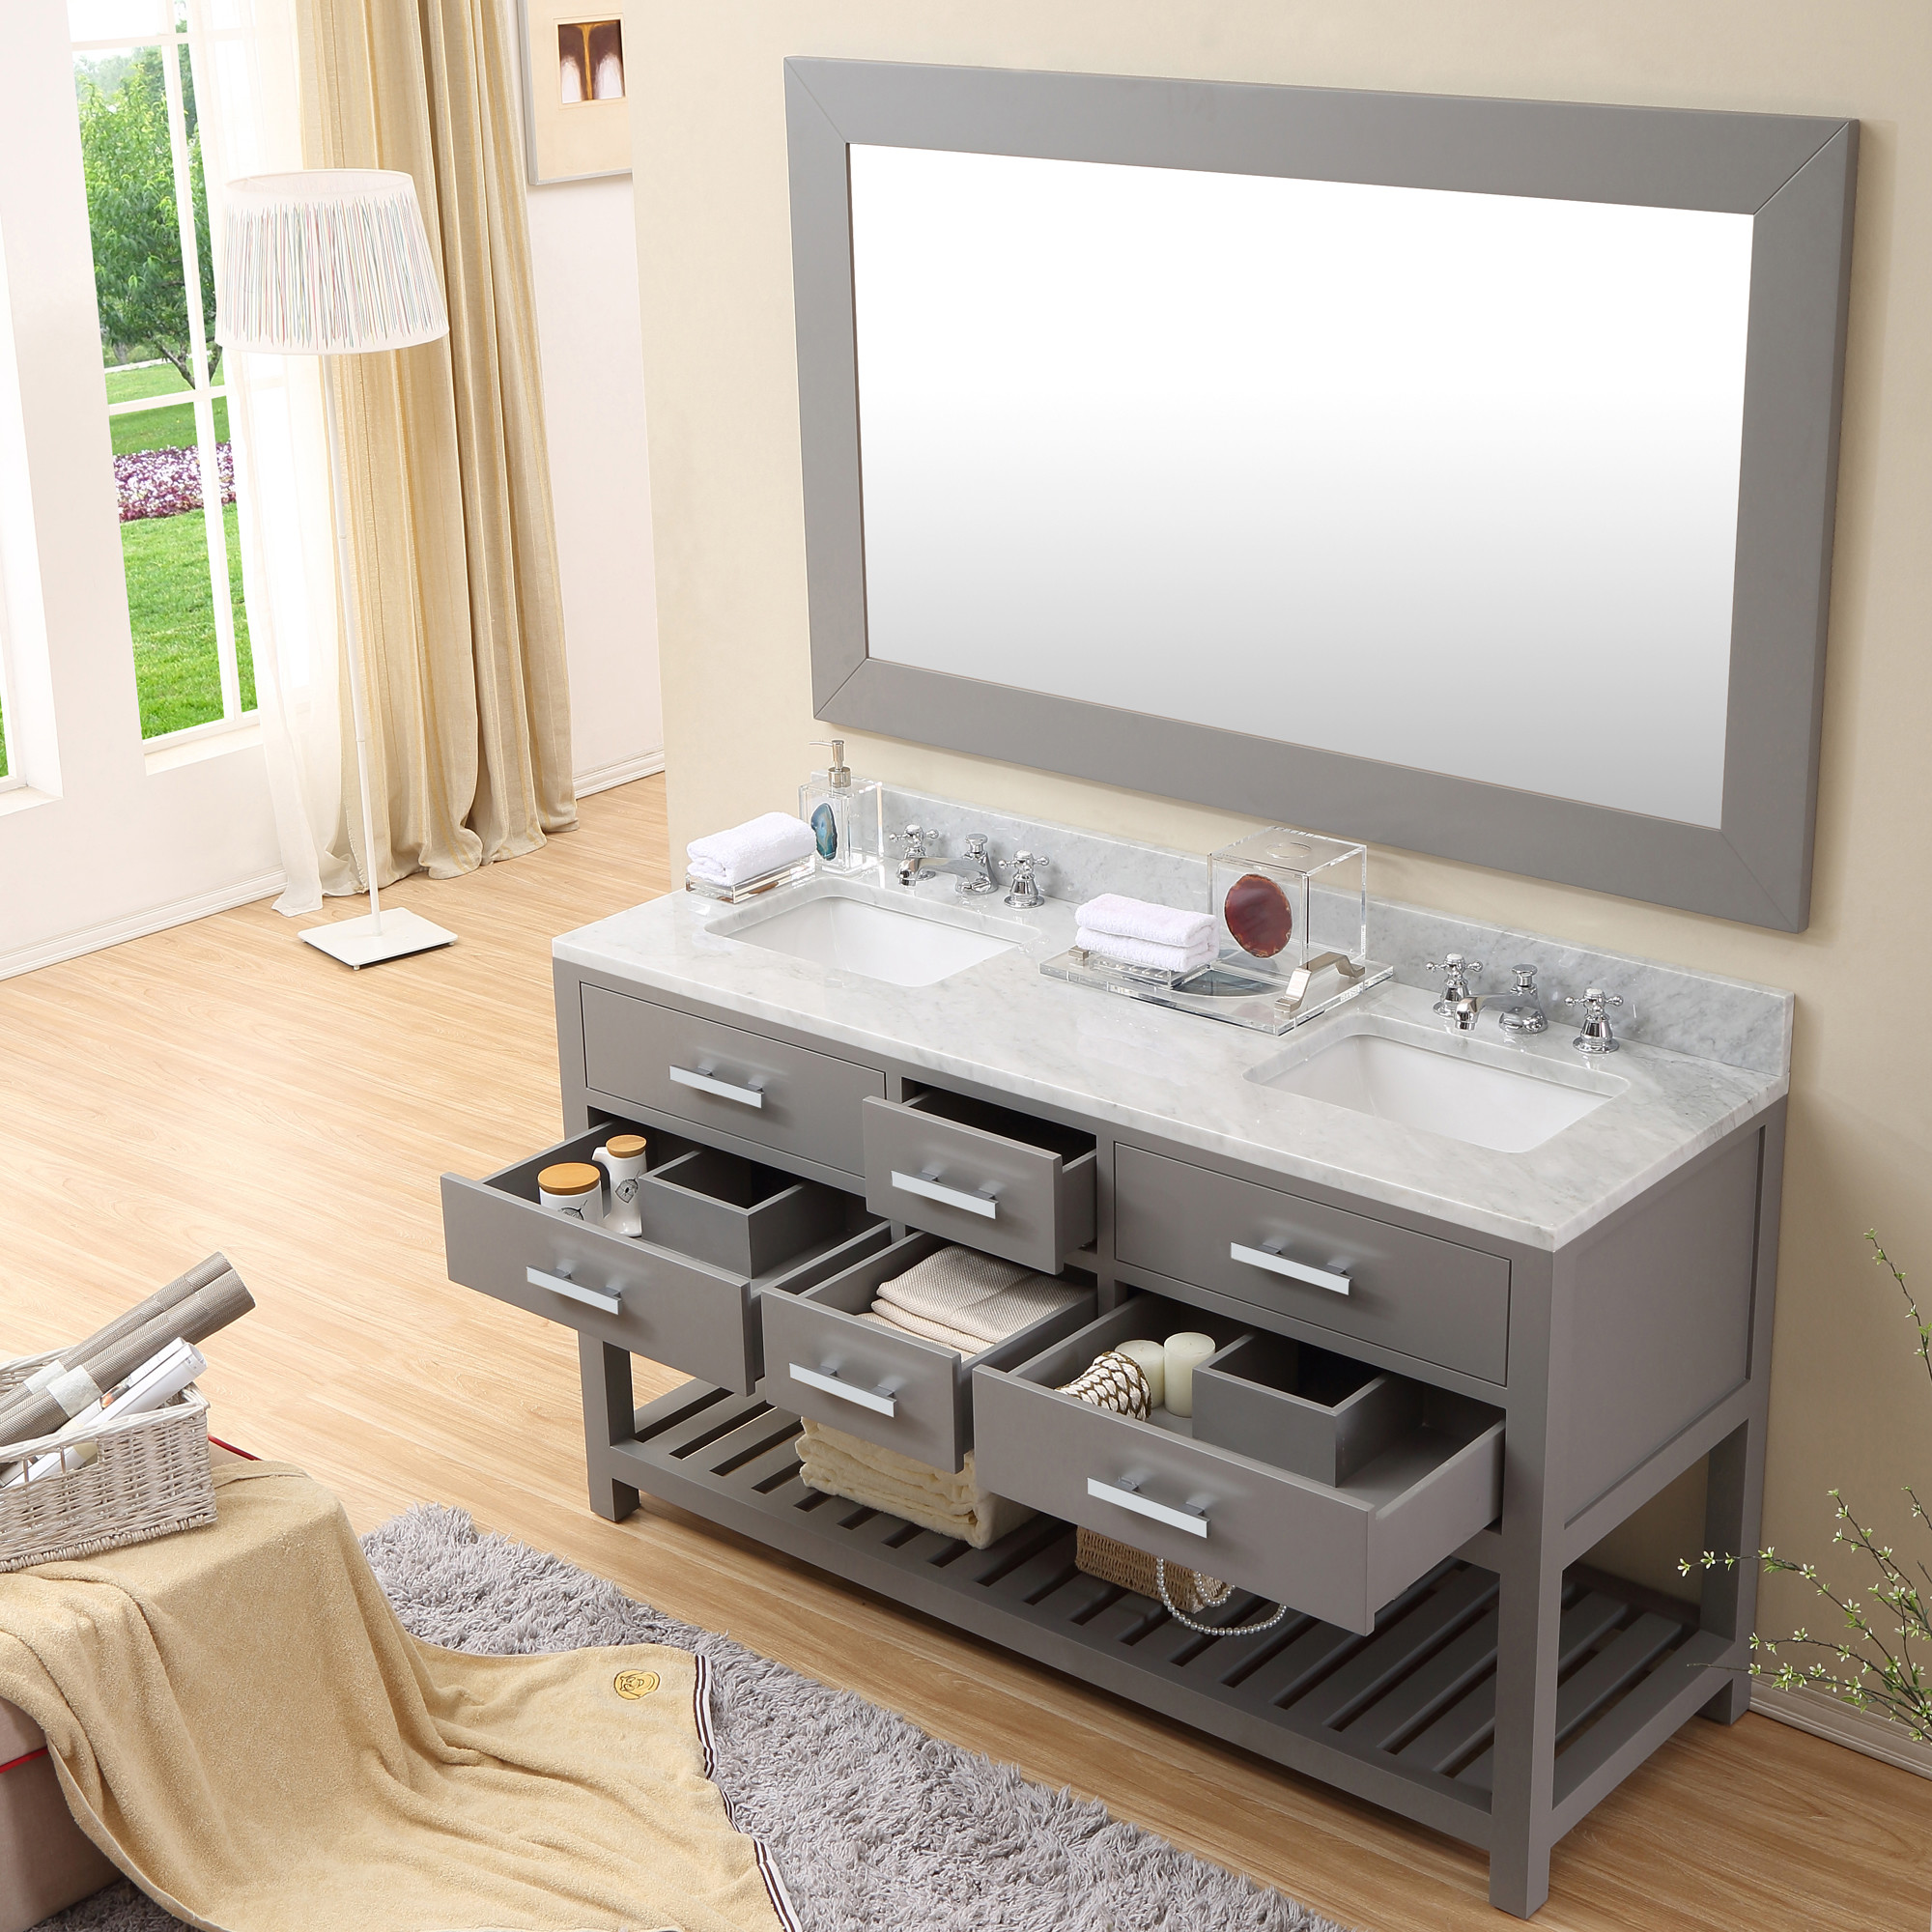 Cadale Inch Gray Finish Double Sink Bathroom Vanity Two Mirrors